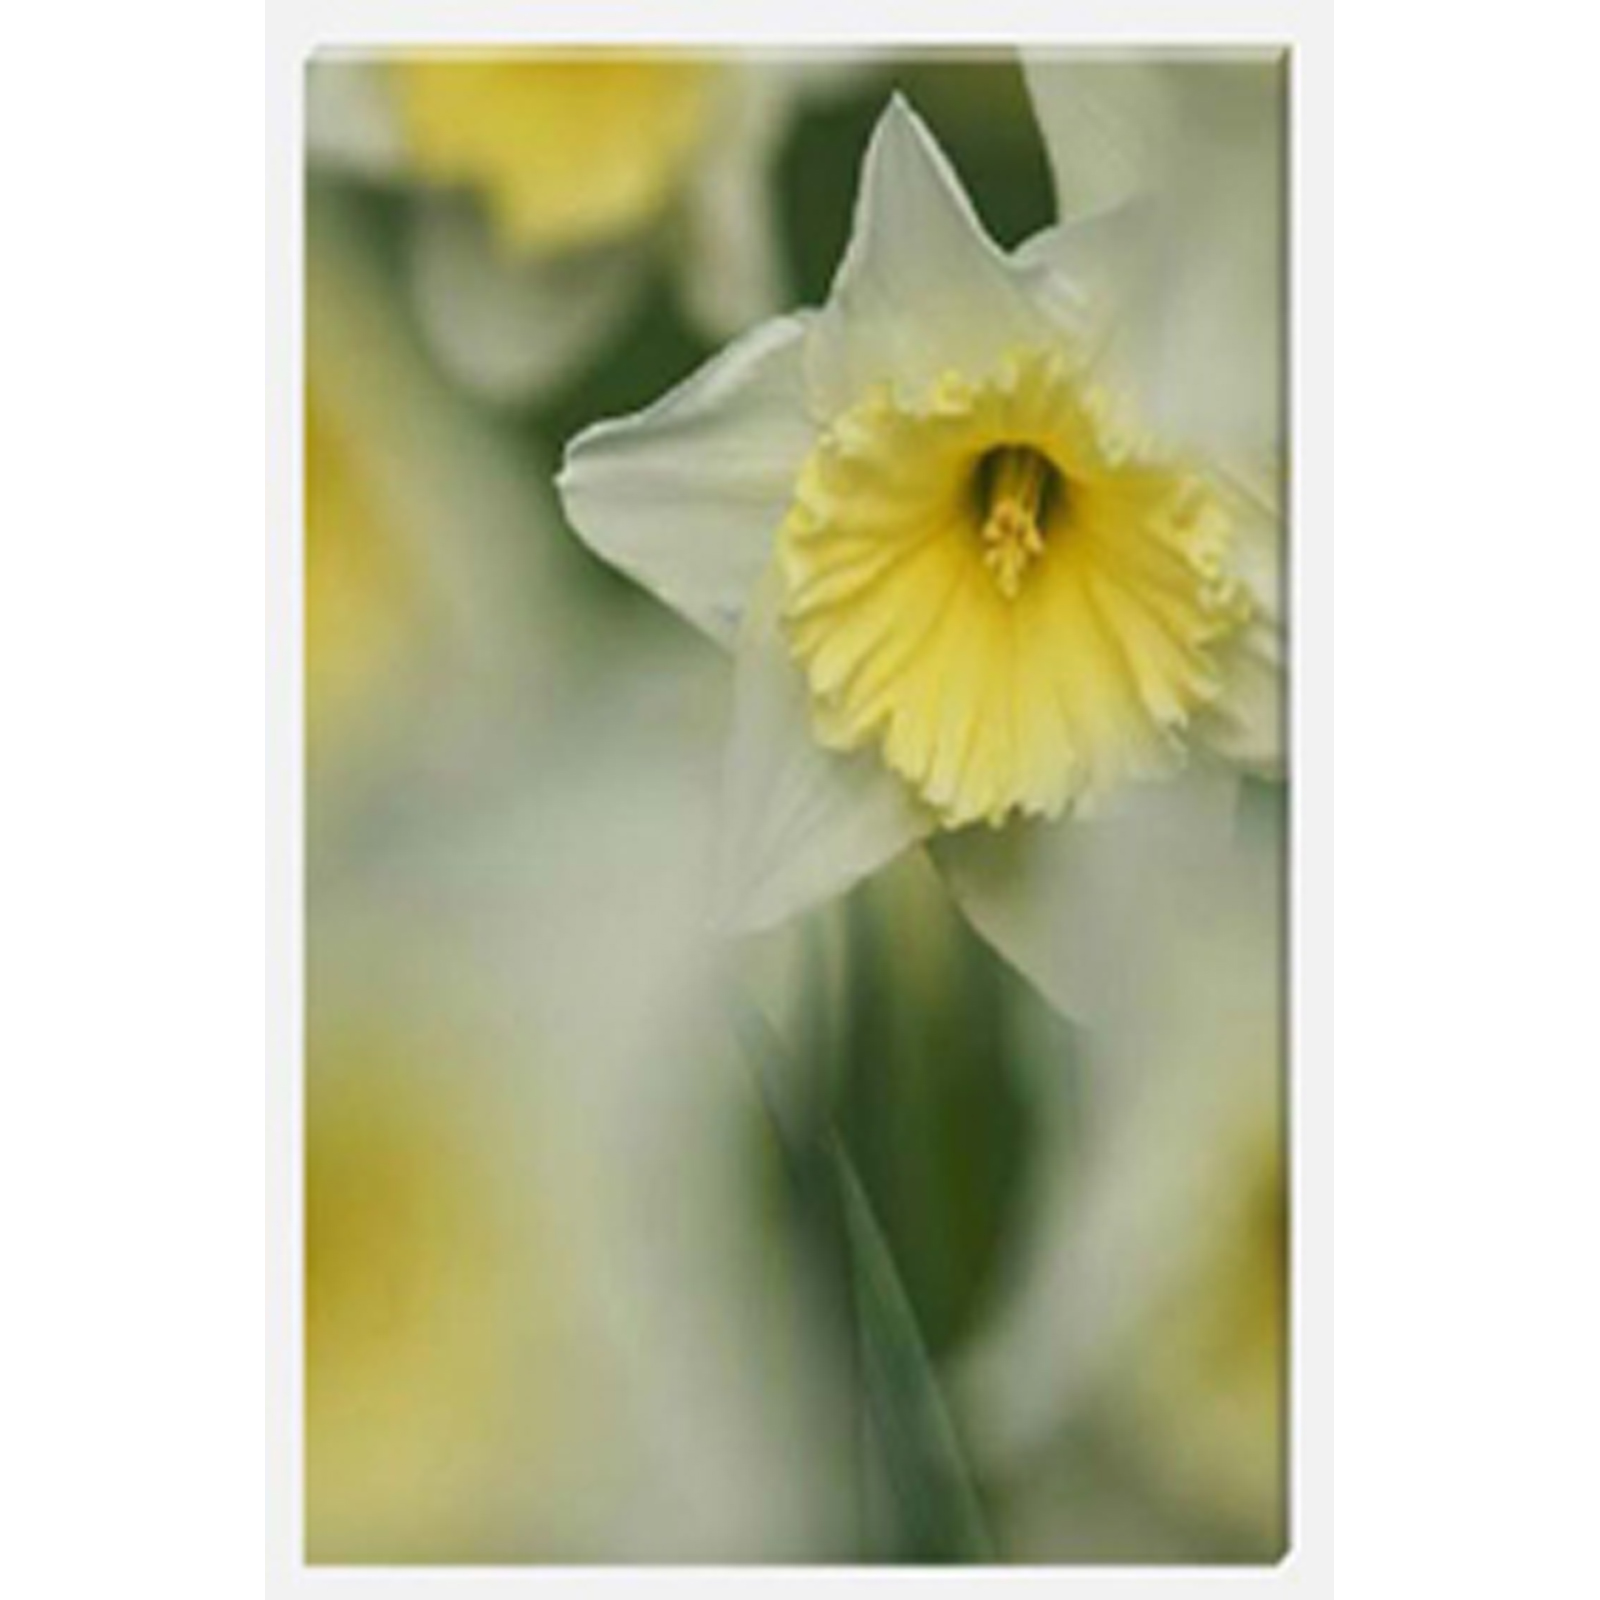 Daffodils Spring Time Stretched Canvas by Celia Henderson LRPS